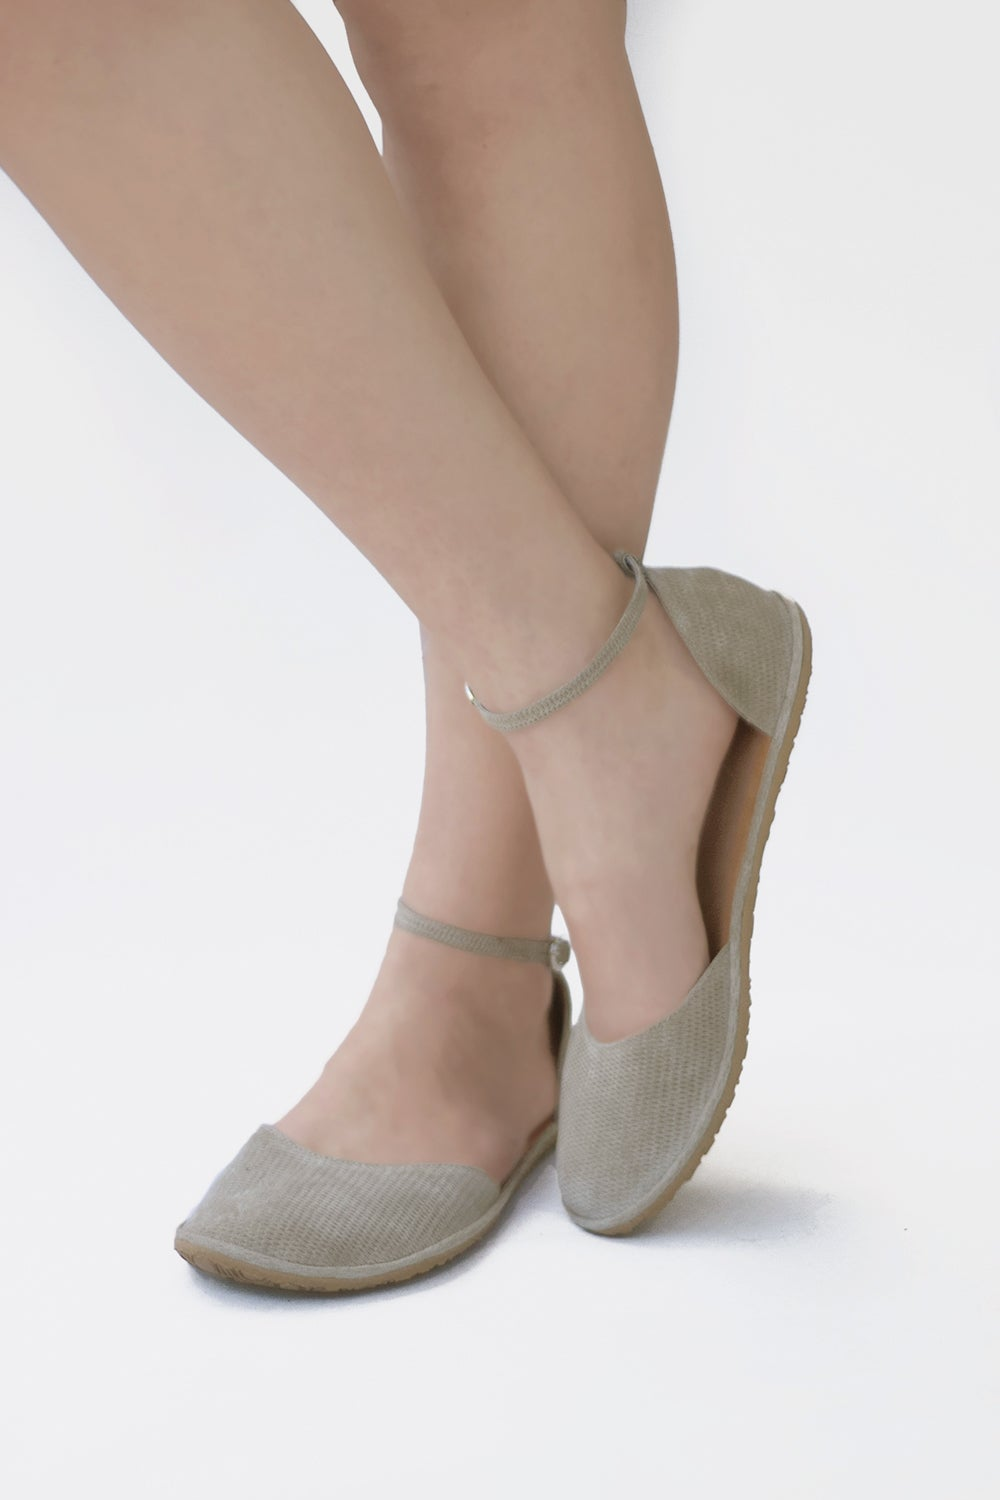 Image of Ellie Dress sandals in Grey suede